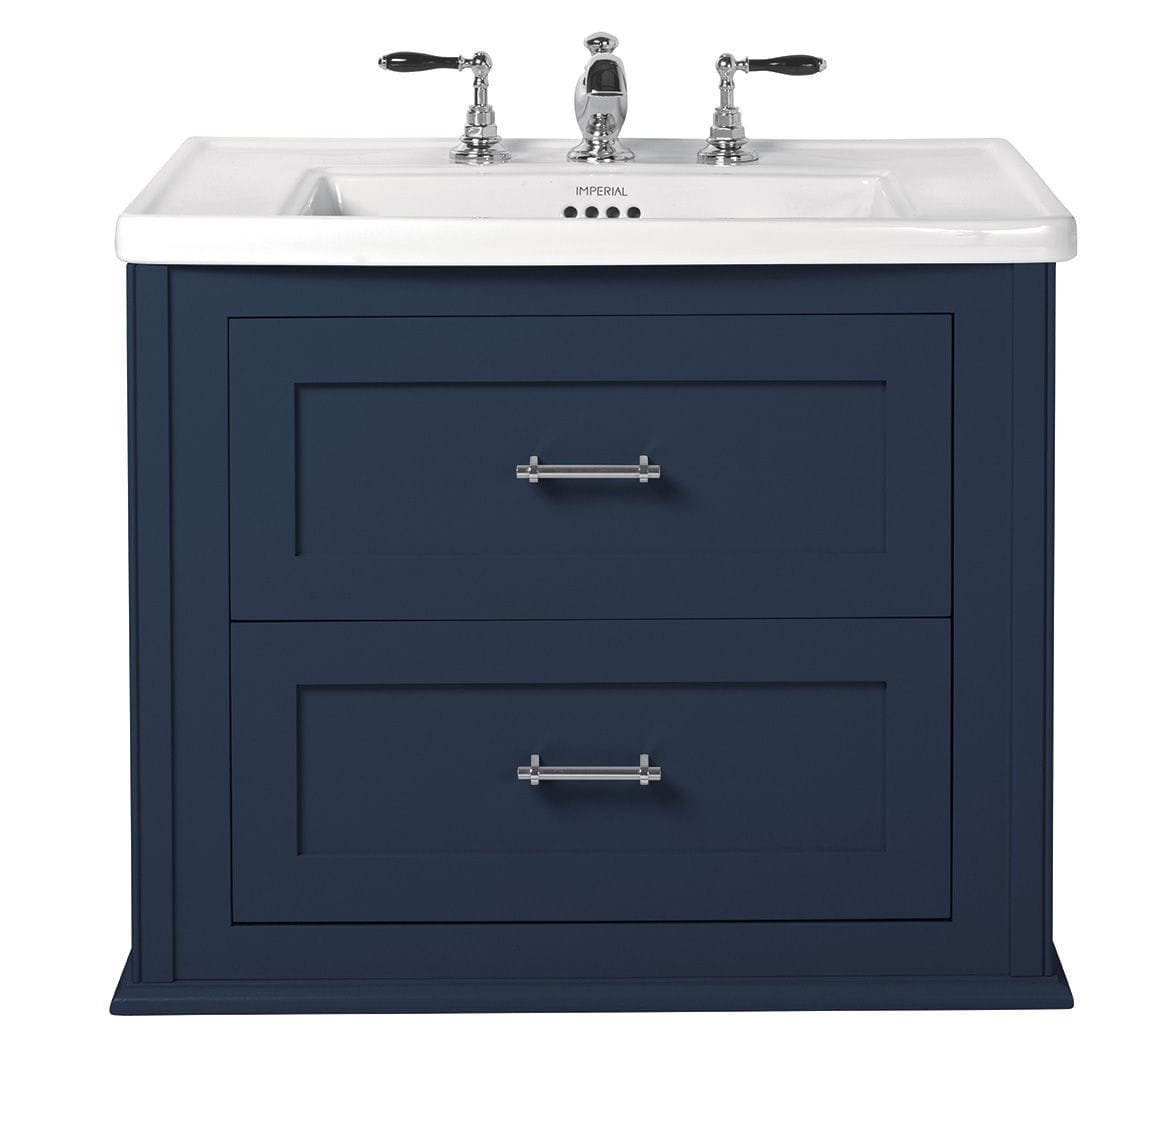 Wall Hung Washbasin Cabinet Radcliffe